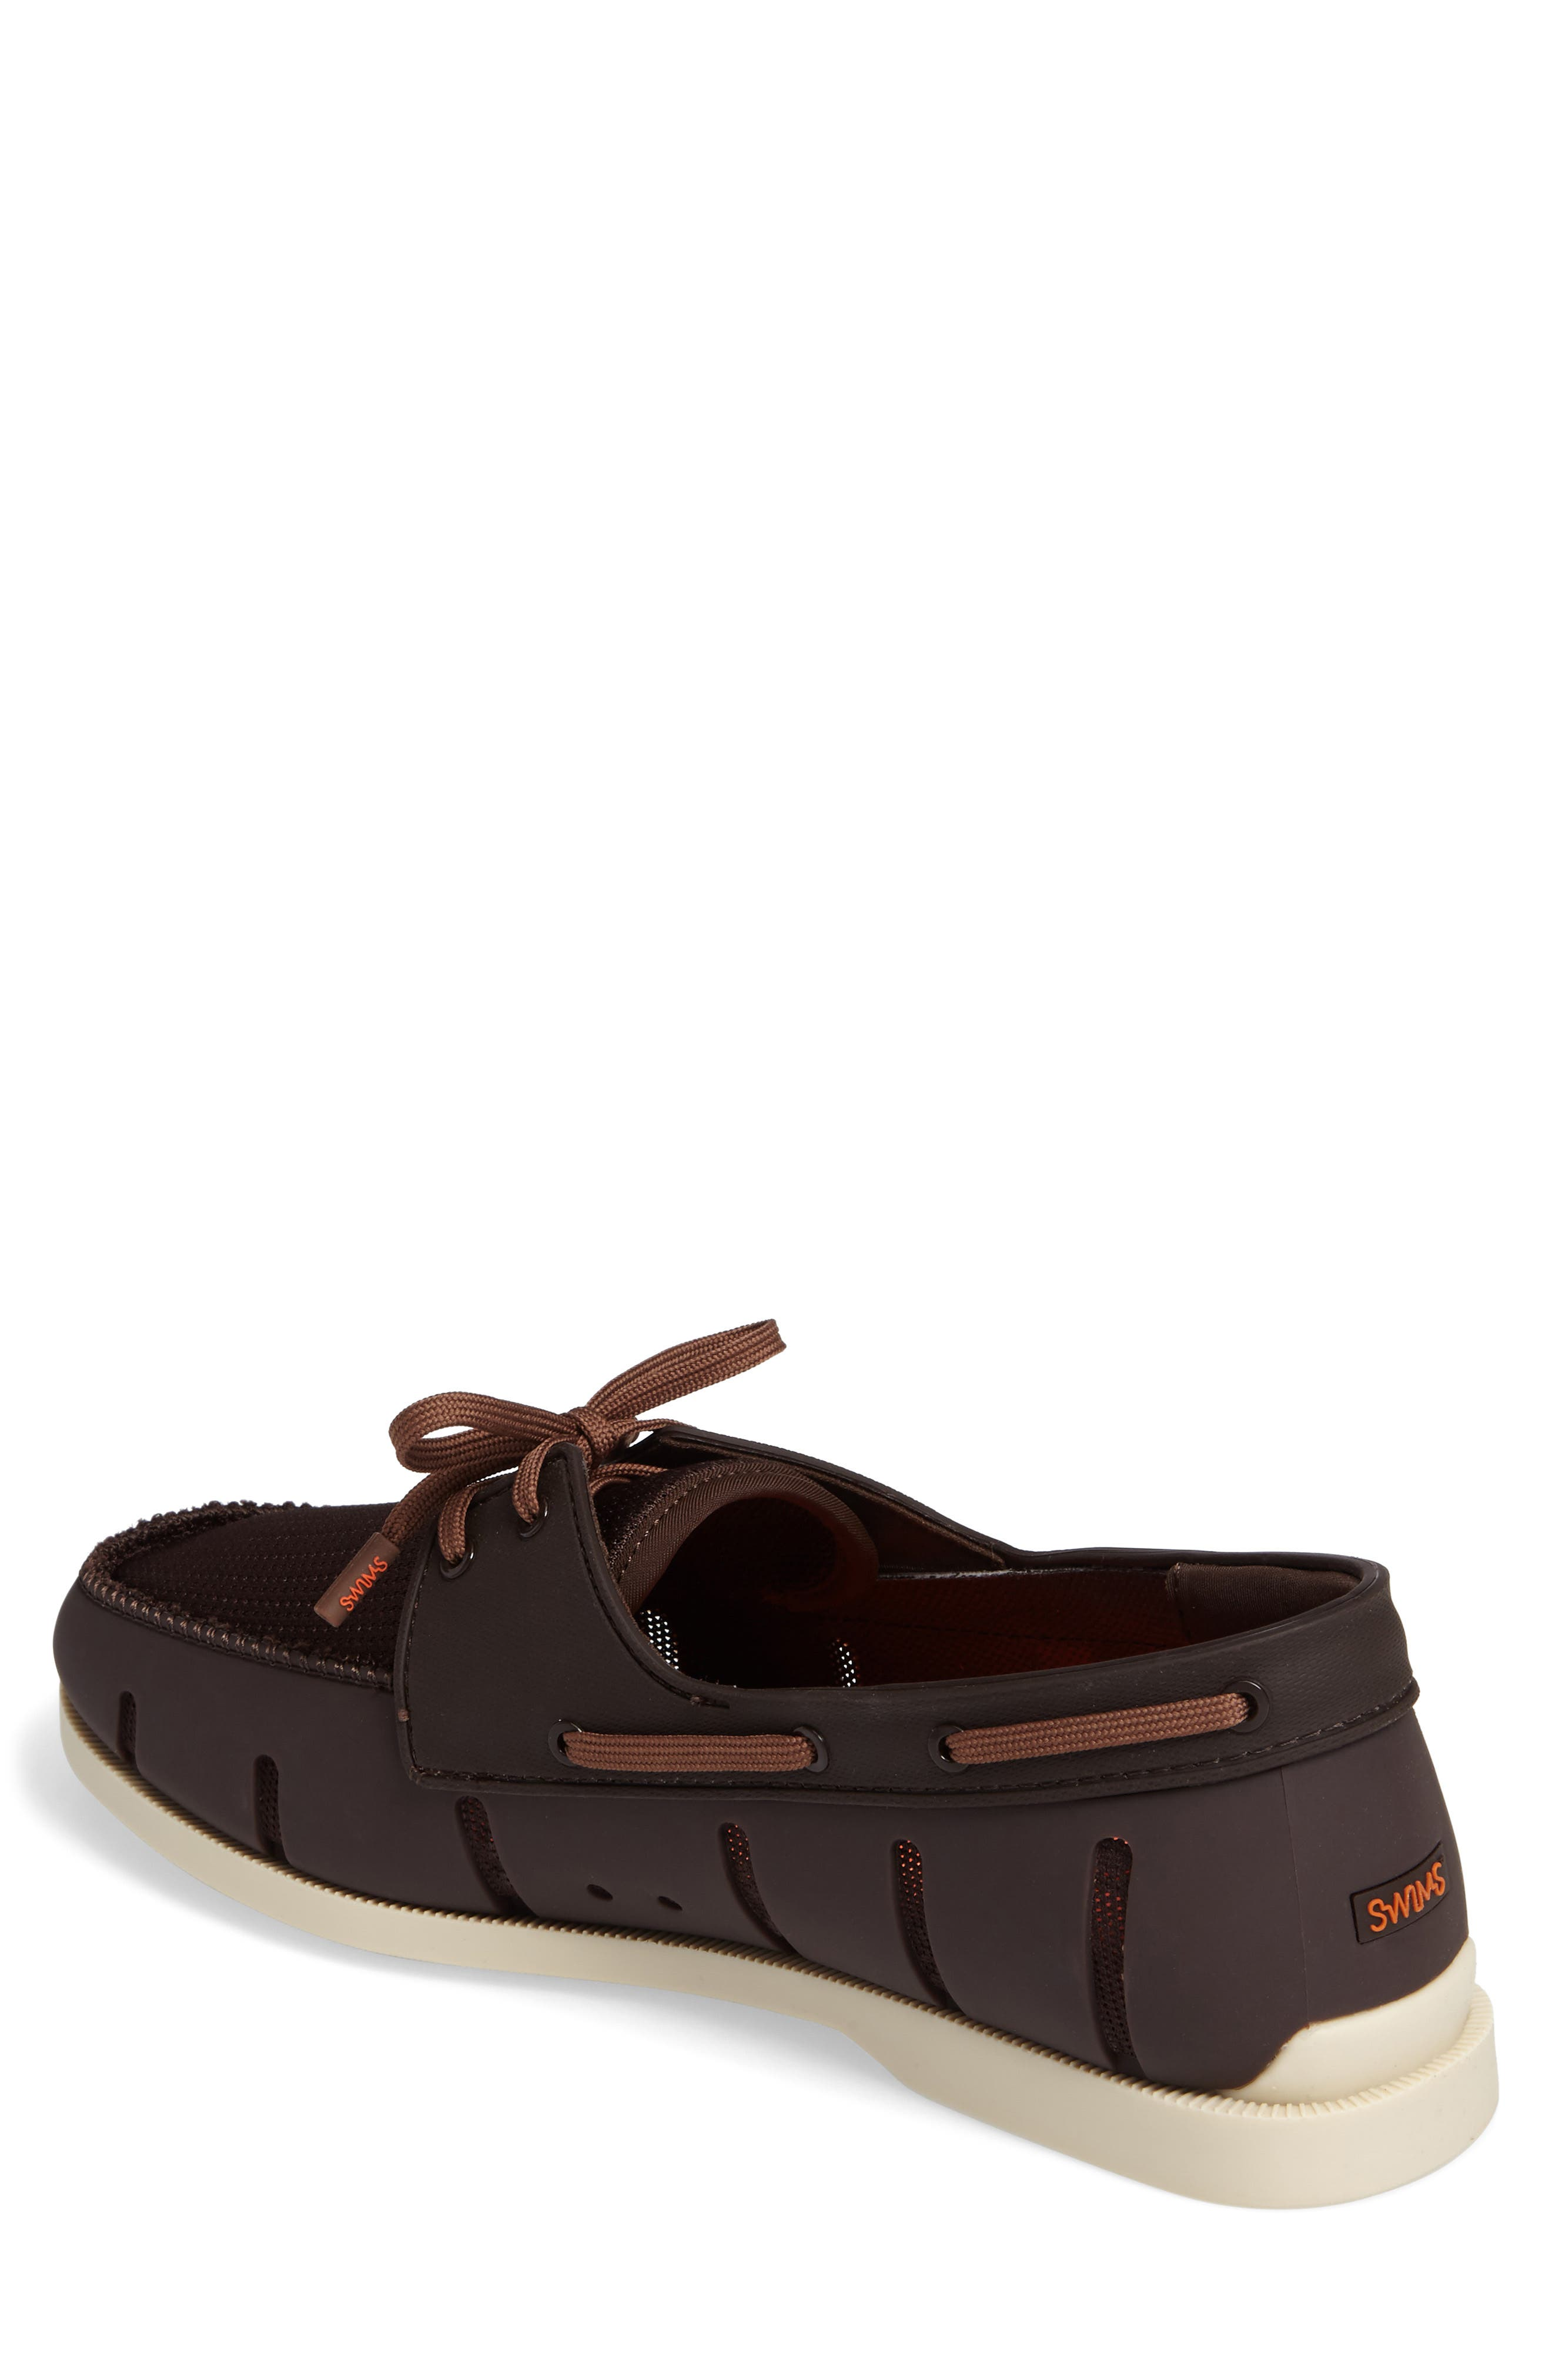 Alternate Image 2  - Swims 'Boat' Loafer (Men)